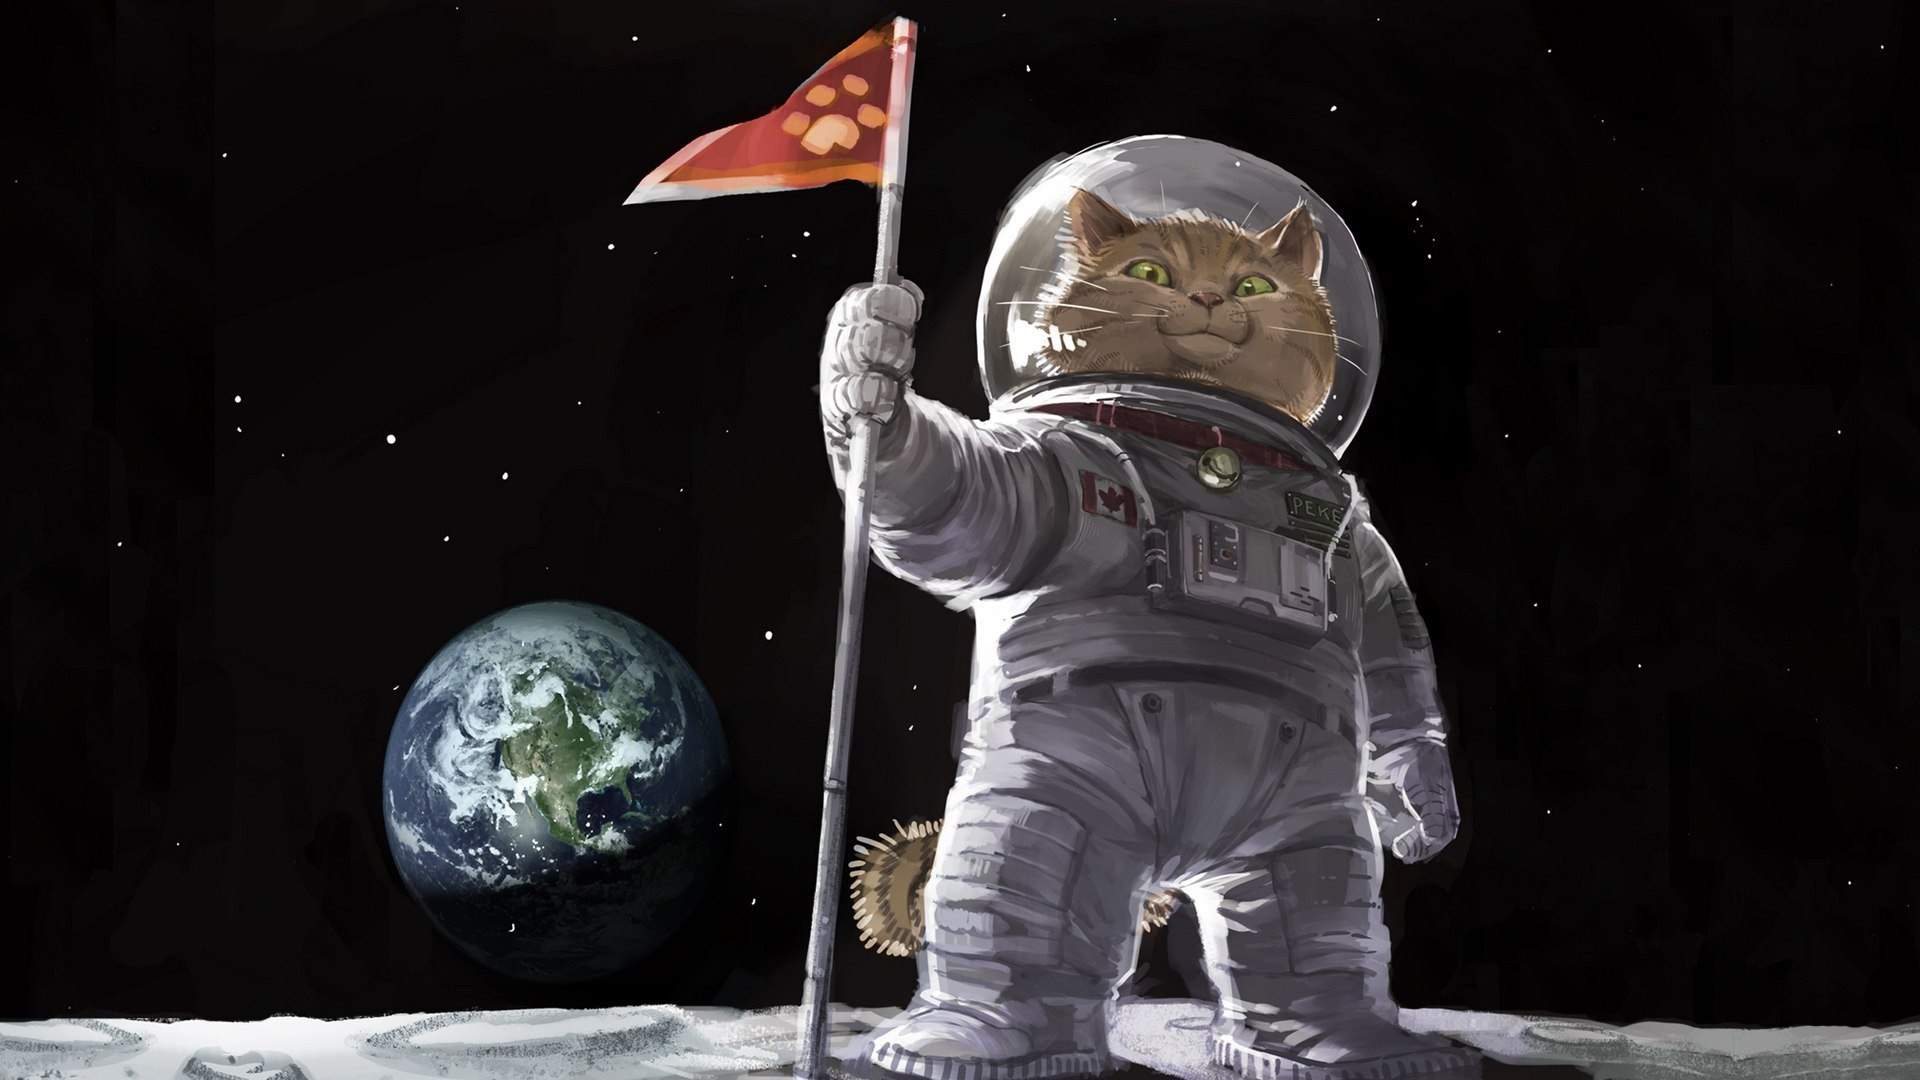 Cat astronaut on the moon wallpapers and images   wallpapers pictures 1920x1080